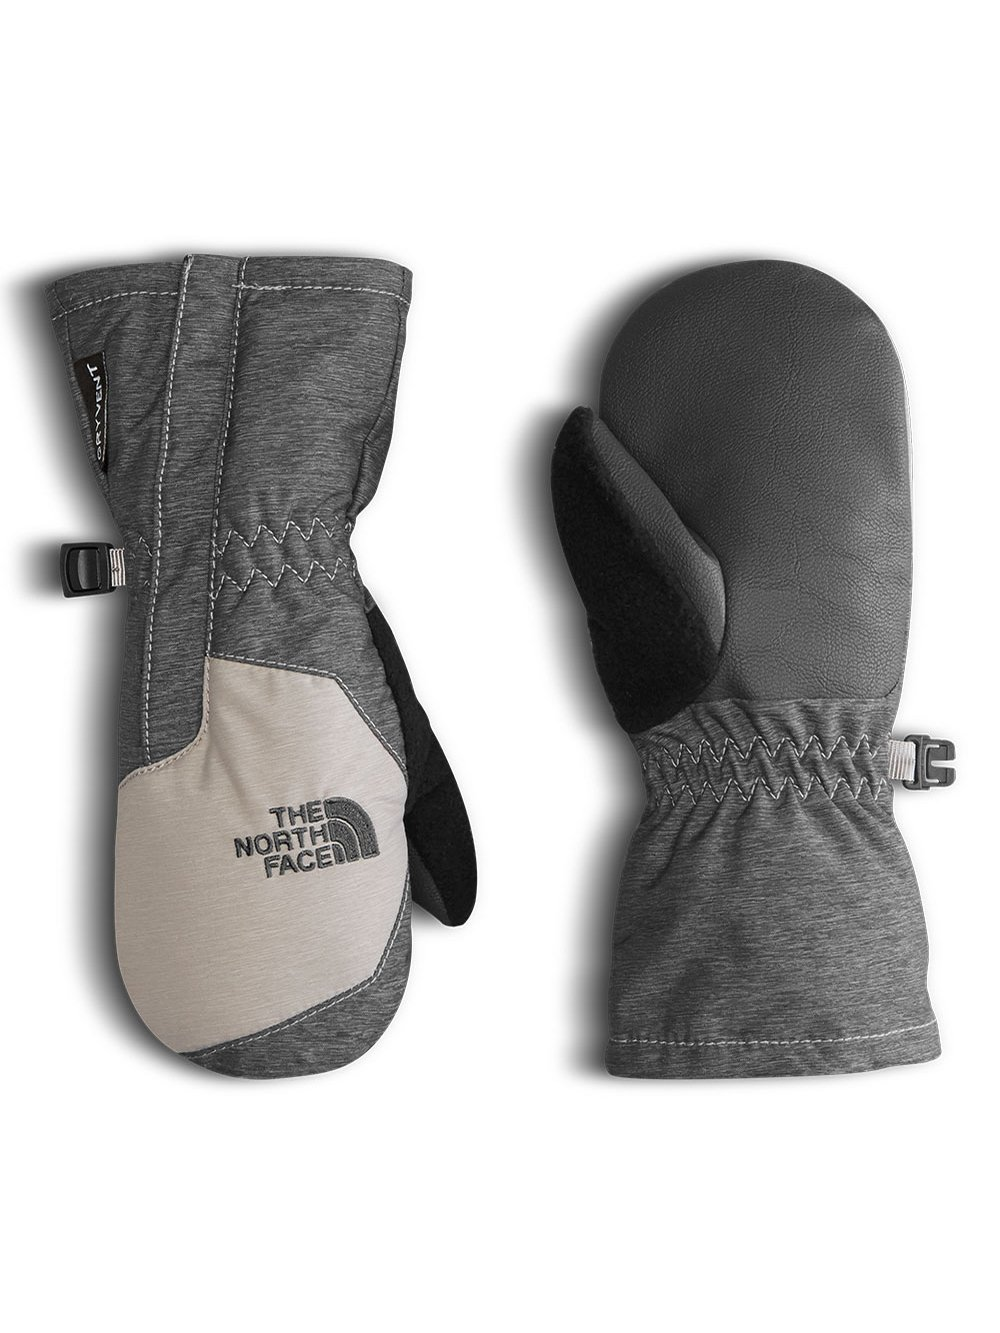 The North Face Little Boys' Toddler Mitts - graphite gry white /metallic